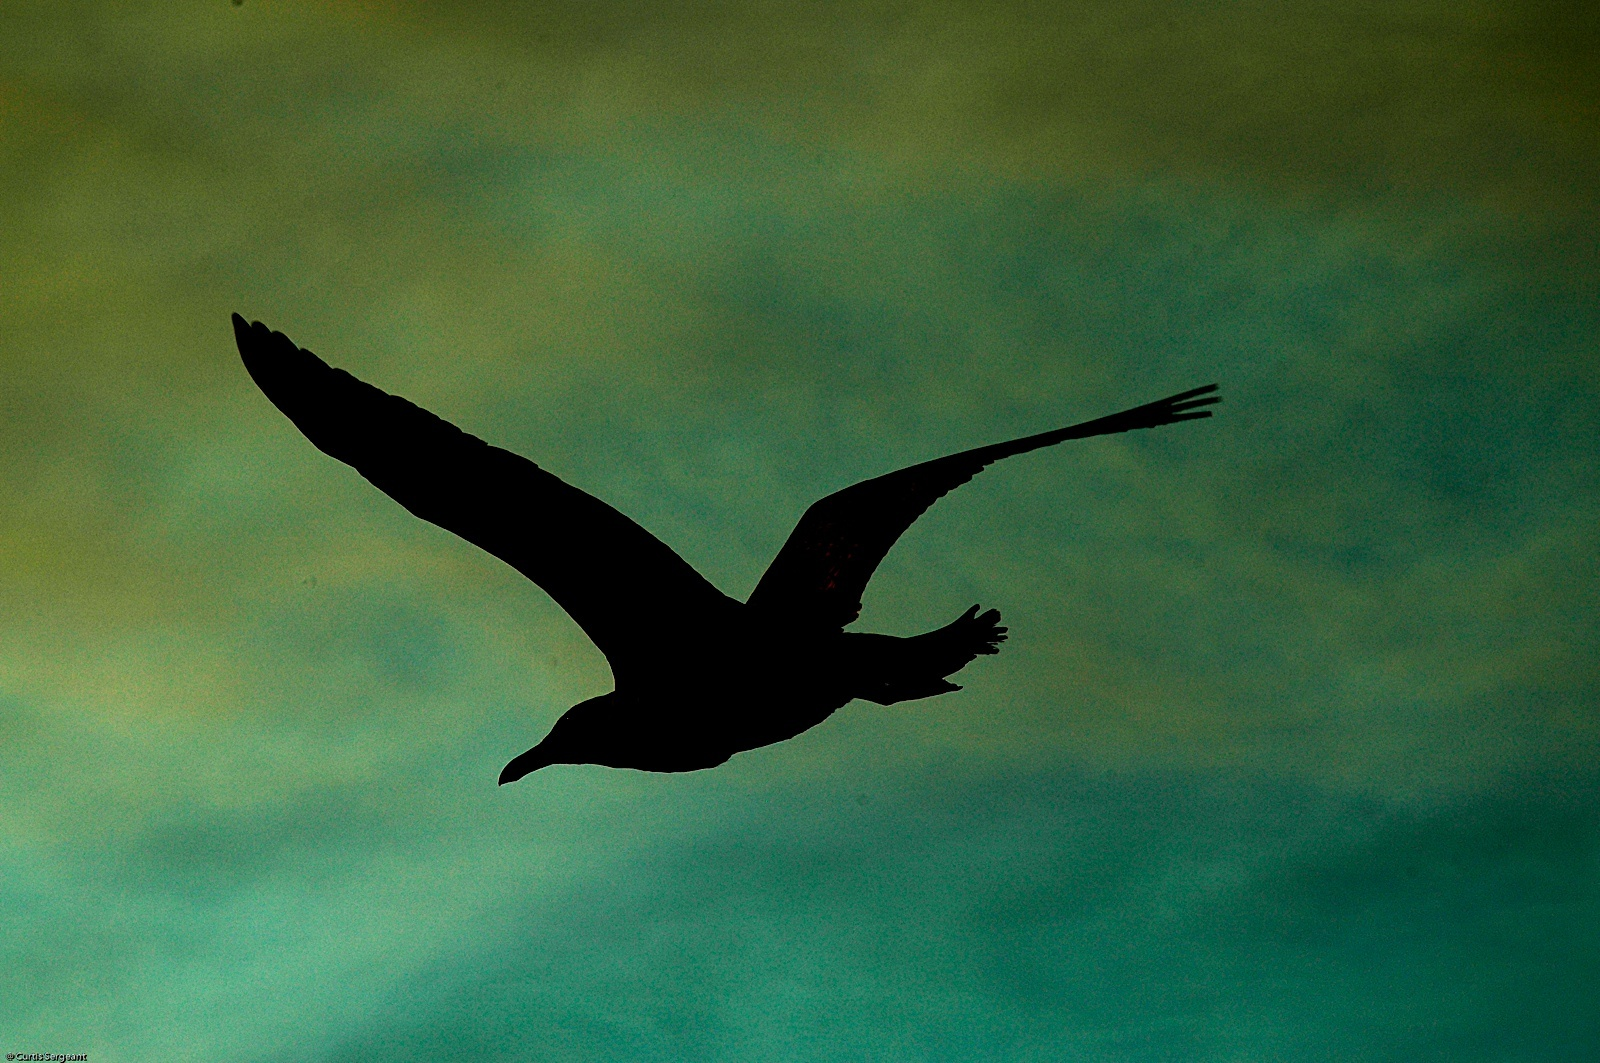 Birds silhouette HD Wallpaper